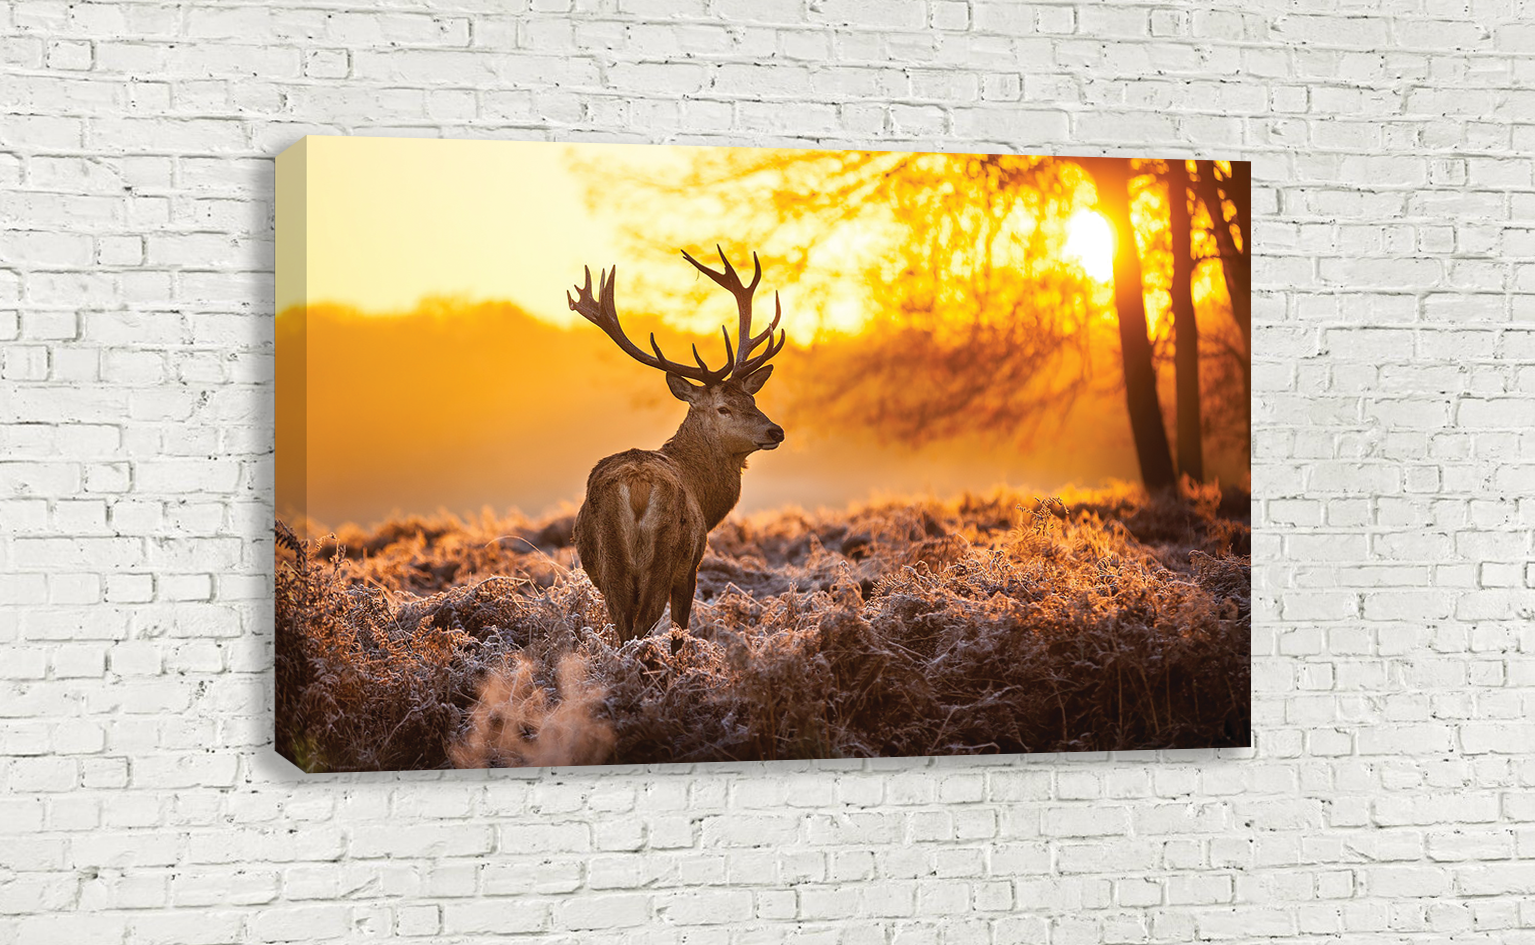 WILD STAG IN THE FOREST SUNSET SUNRISE DEER WALL ART